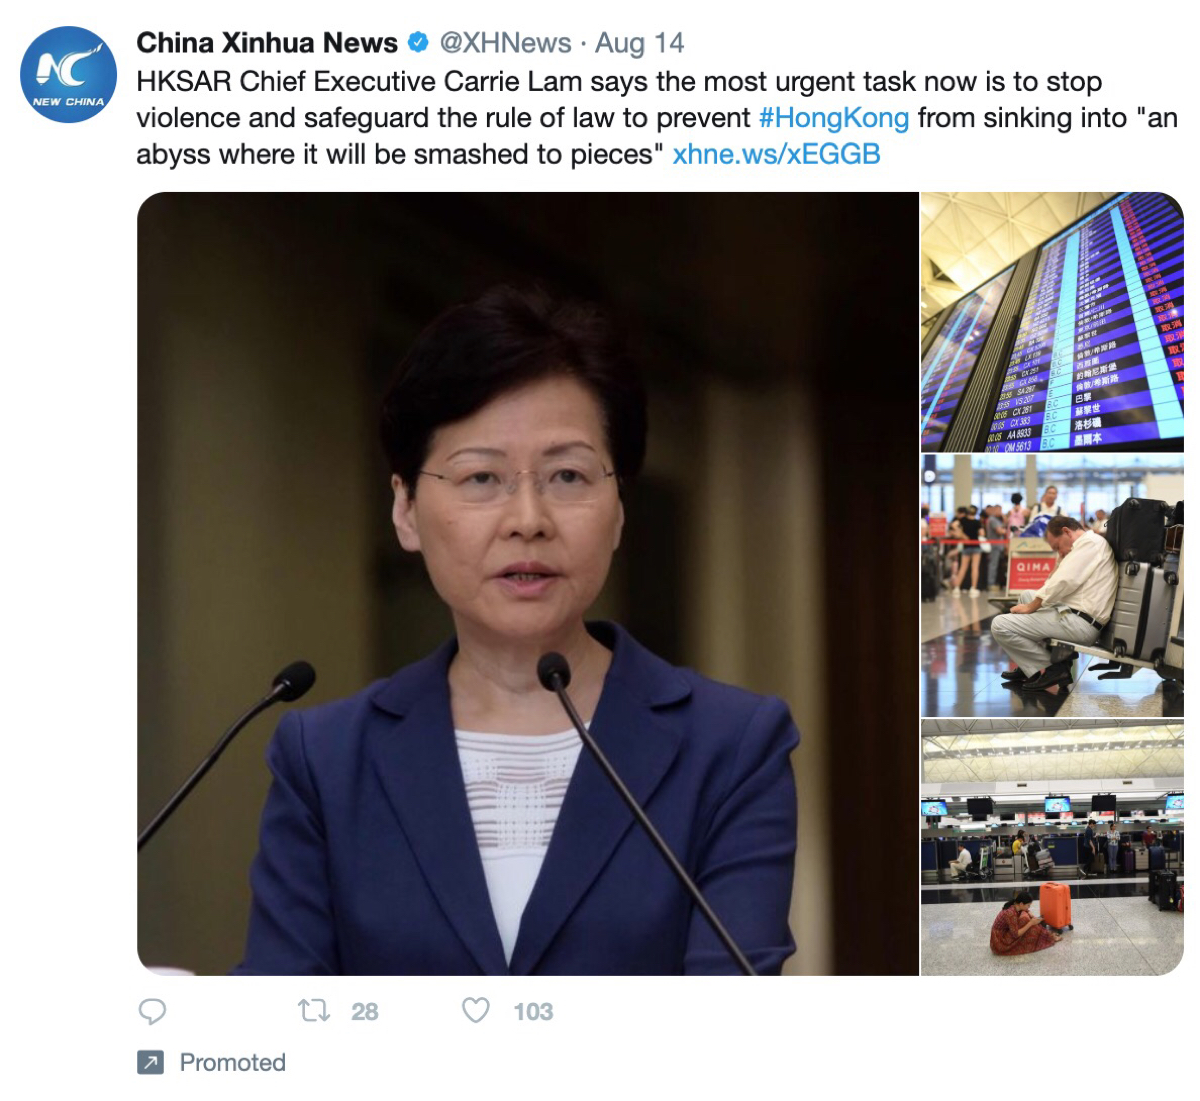 Promoted tweets from China Xinhua News featured in Twitter's ad transparency tool.